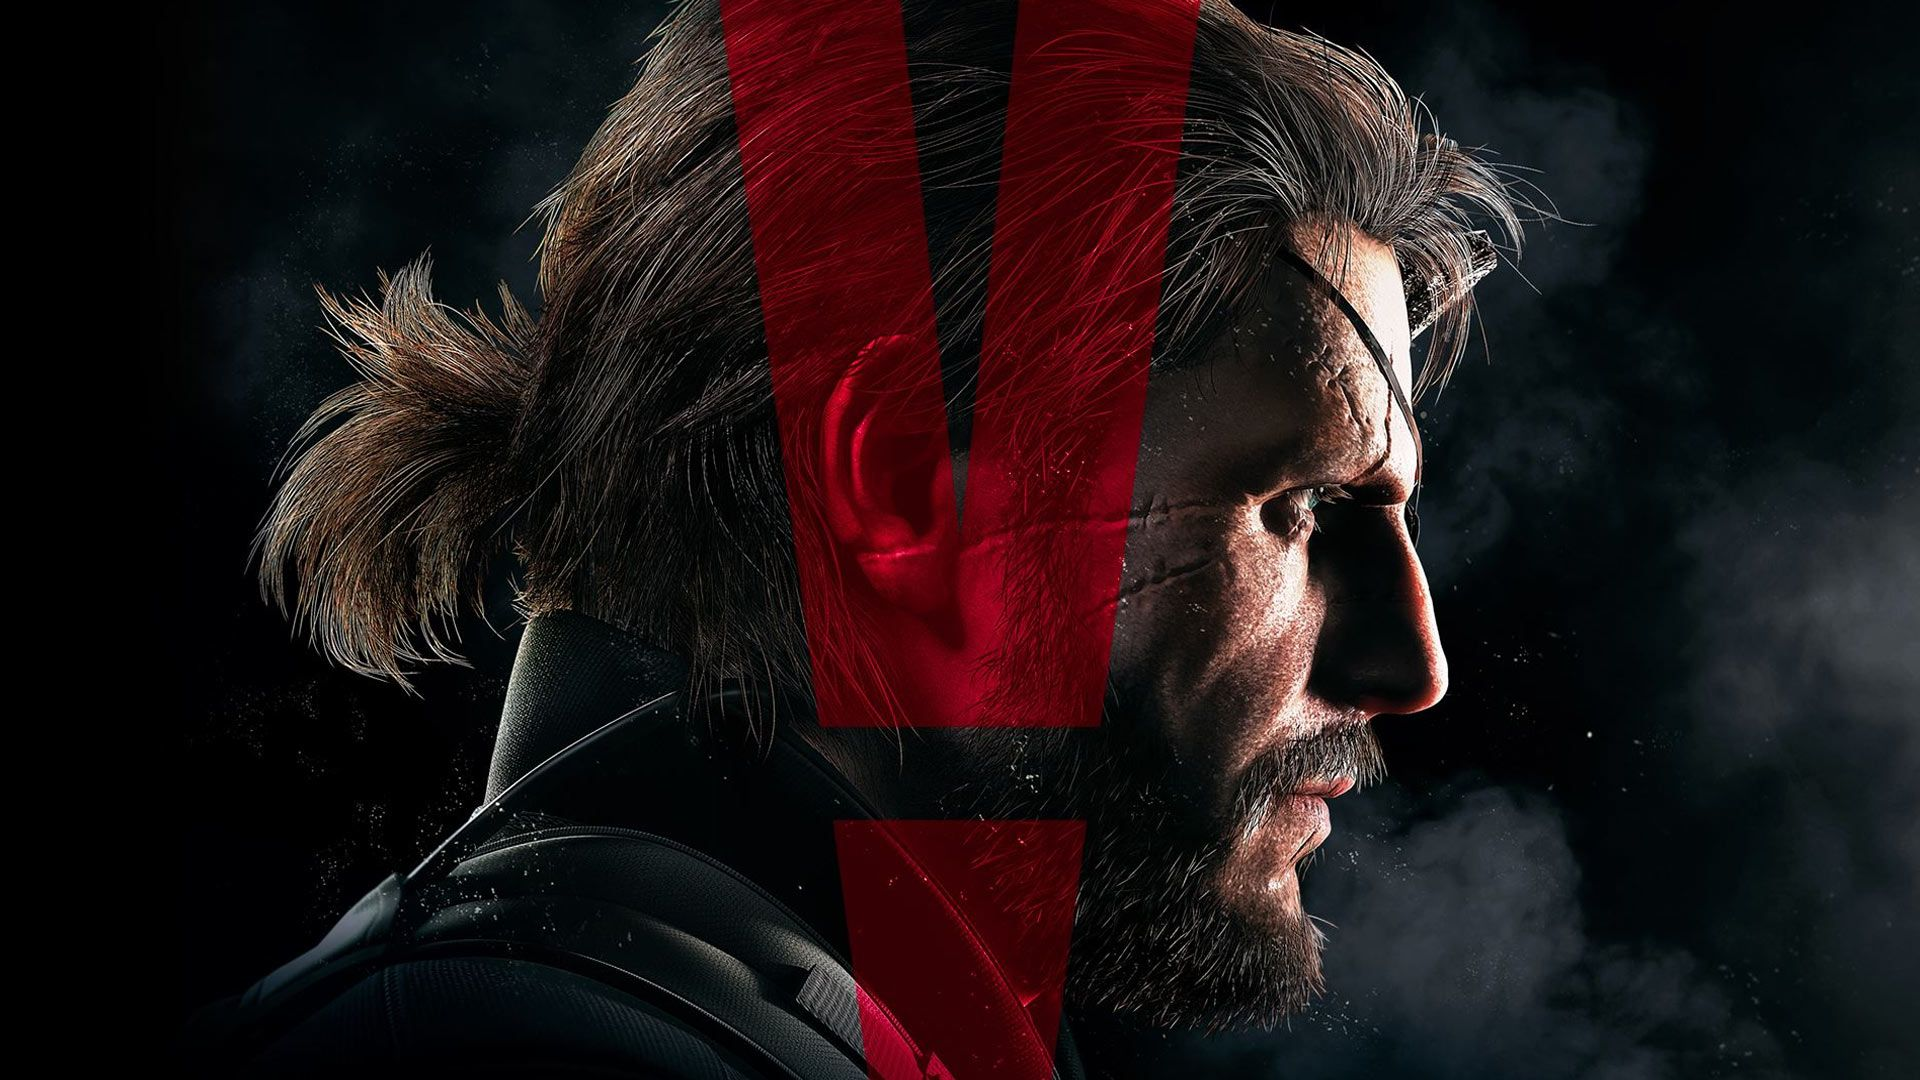 Punished Venom Snake Metal Gear Solid V The Phantom Pain Wallpaper Definitive Edtn Region 2